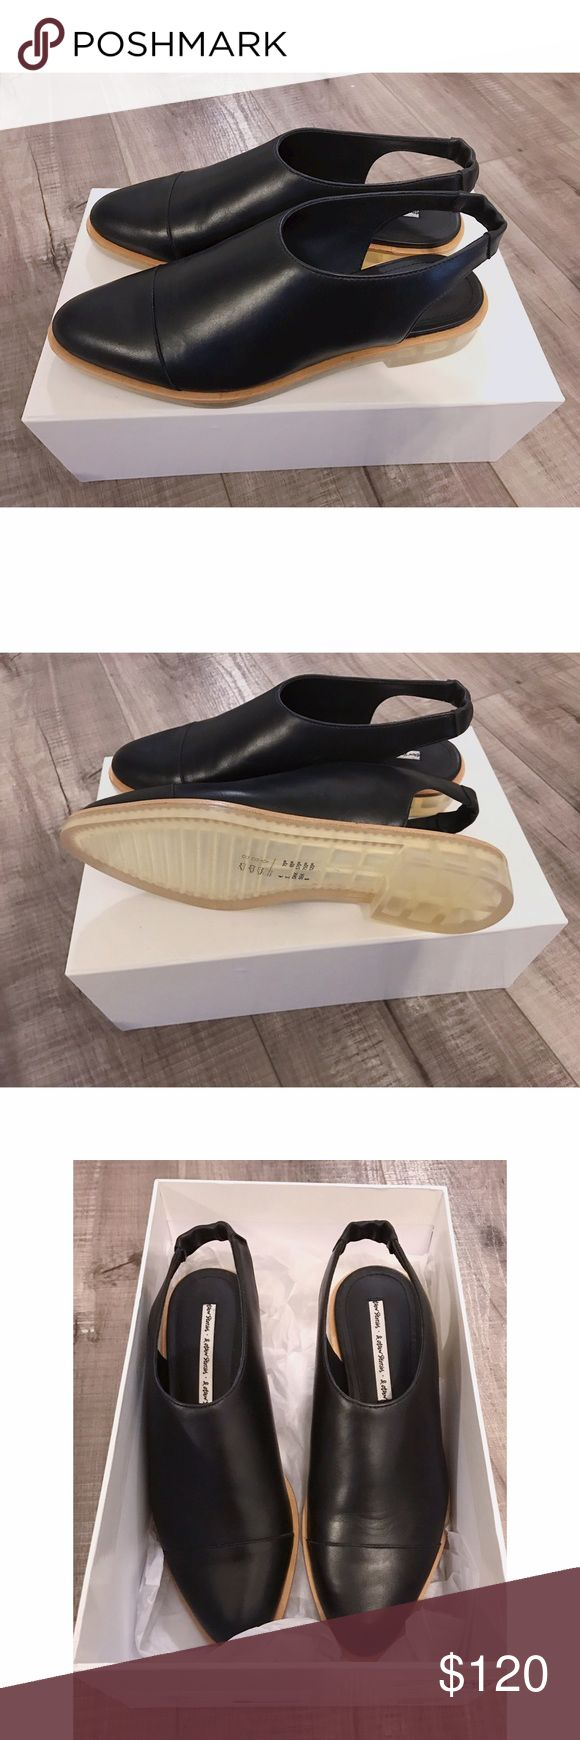 & Other Stories Black Leather Oxford Mule Flats 37 Beautiful black mule shoes in a minimal style you can wear with anything. Dress them with skinnies or cute shorts and a bathing suit. Or button down skirts and a tight tee. These are so cute and elegant. Hard to find! Like Reformation style shoes. Never worn. NEW. With tags and box. By & Other Stories. True to size 37/7 7.5. Not 8. & Other Stories Shoes